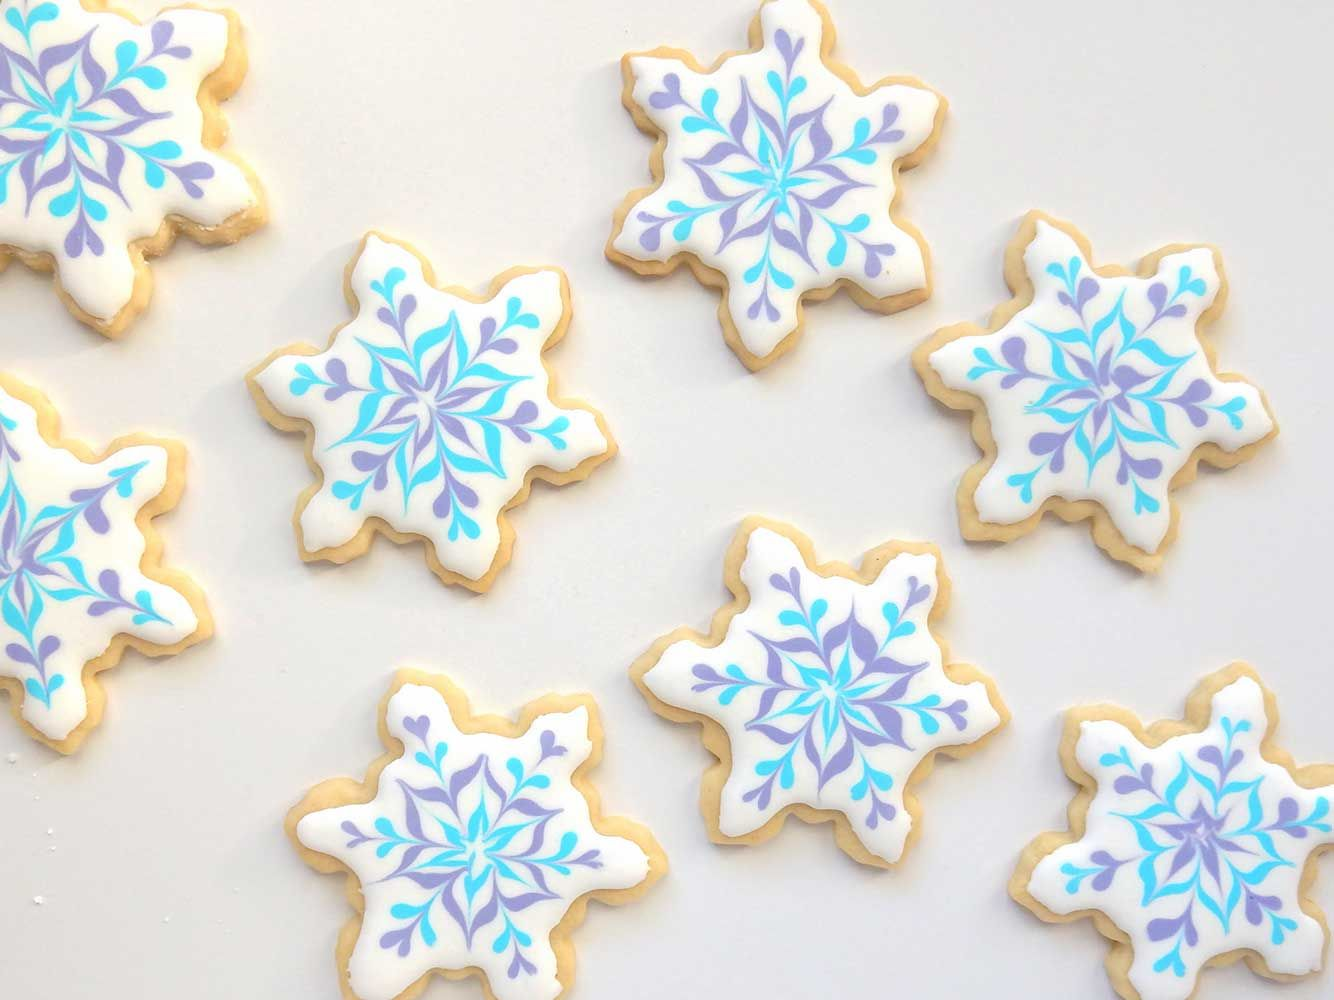 Snowflake sugar cookies. How to decorate using royal icing ...